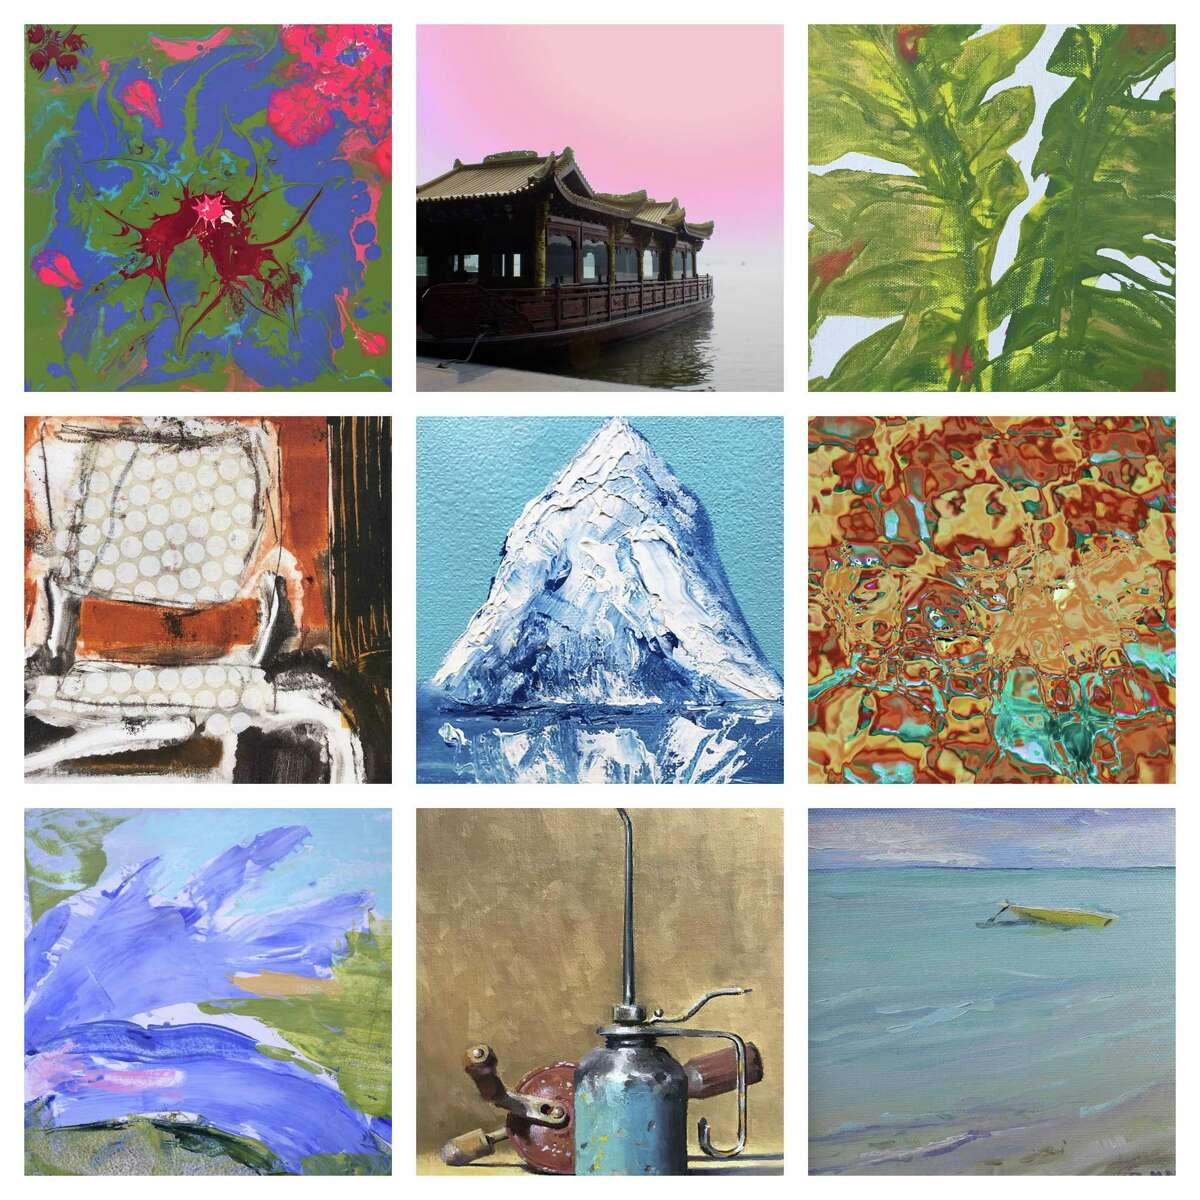 """""""Inside Small"""" is on view through June 26 at the Greenwich Botanical Center Gallery in Cos Cob. The artists will be present at the opening reception on June 9, with refreshments, light fare and music."""